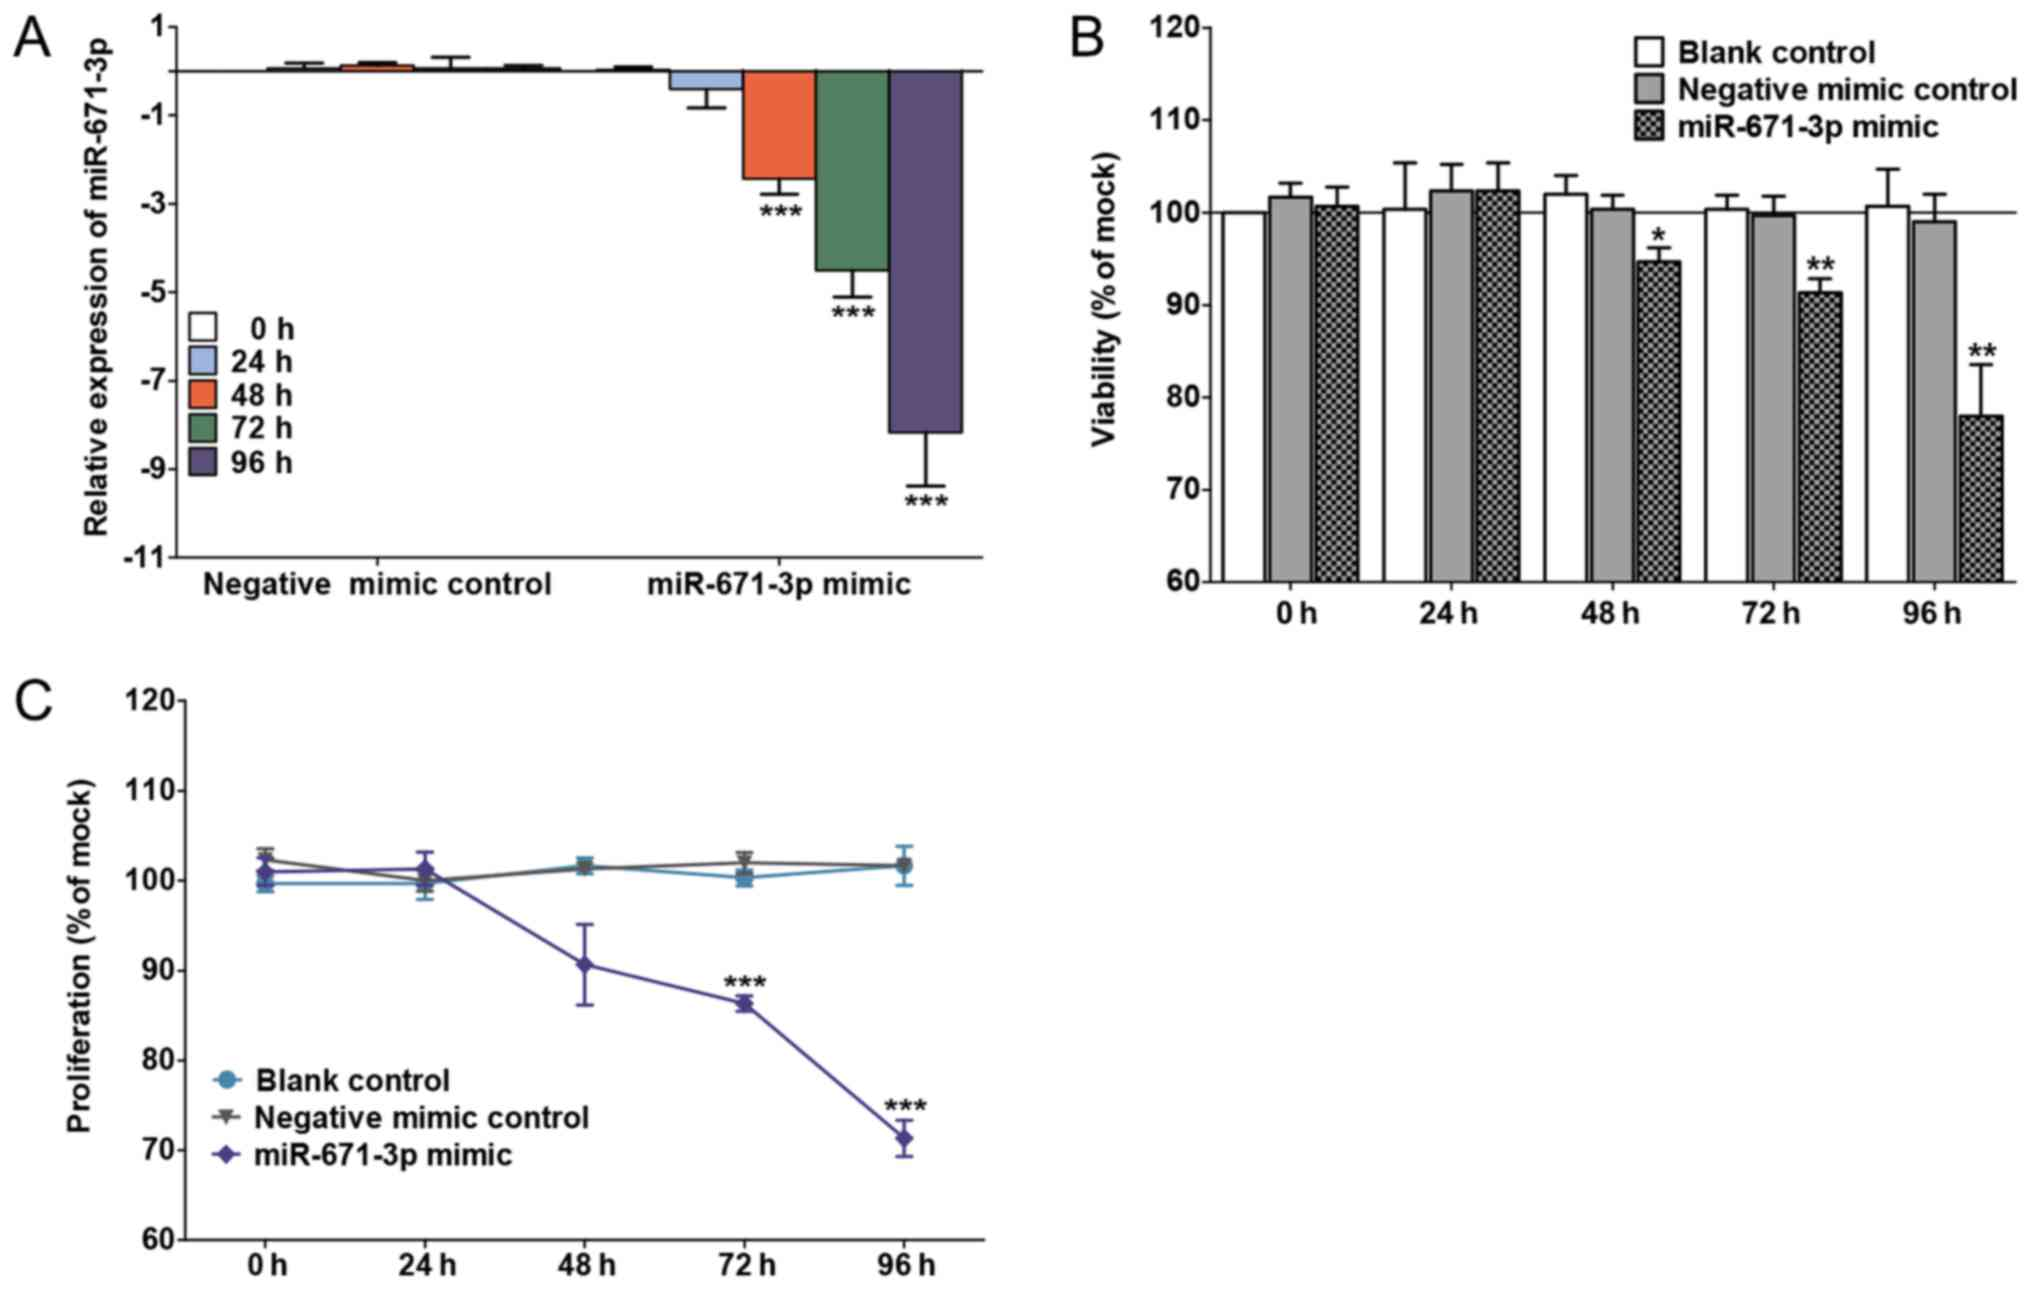 MicroRNA-671-3p inhibits the development of breast cancer: A